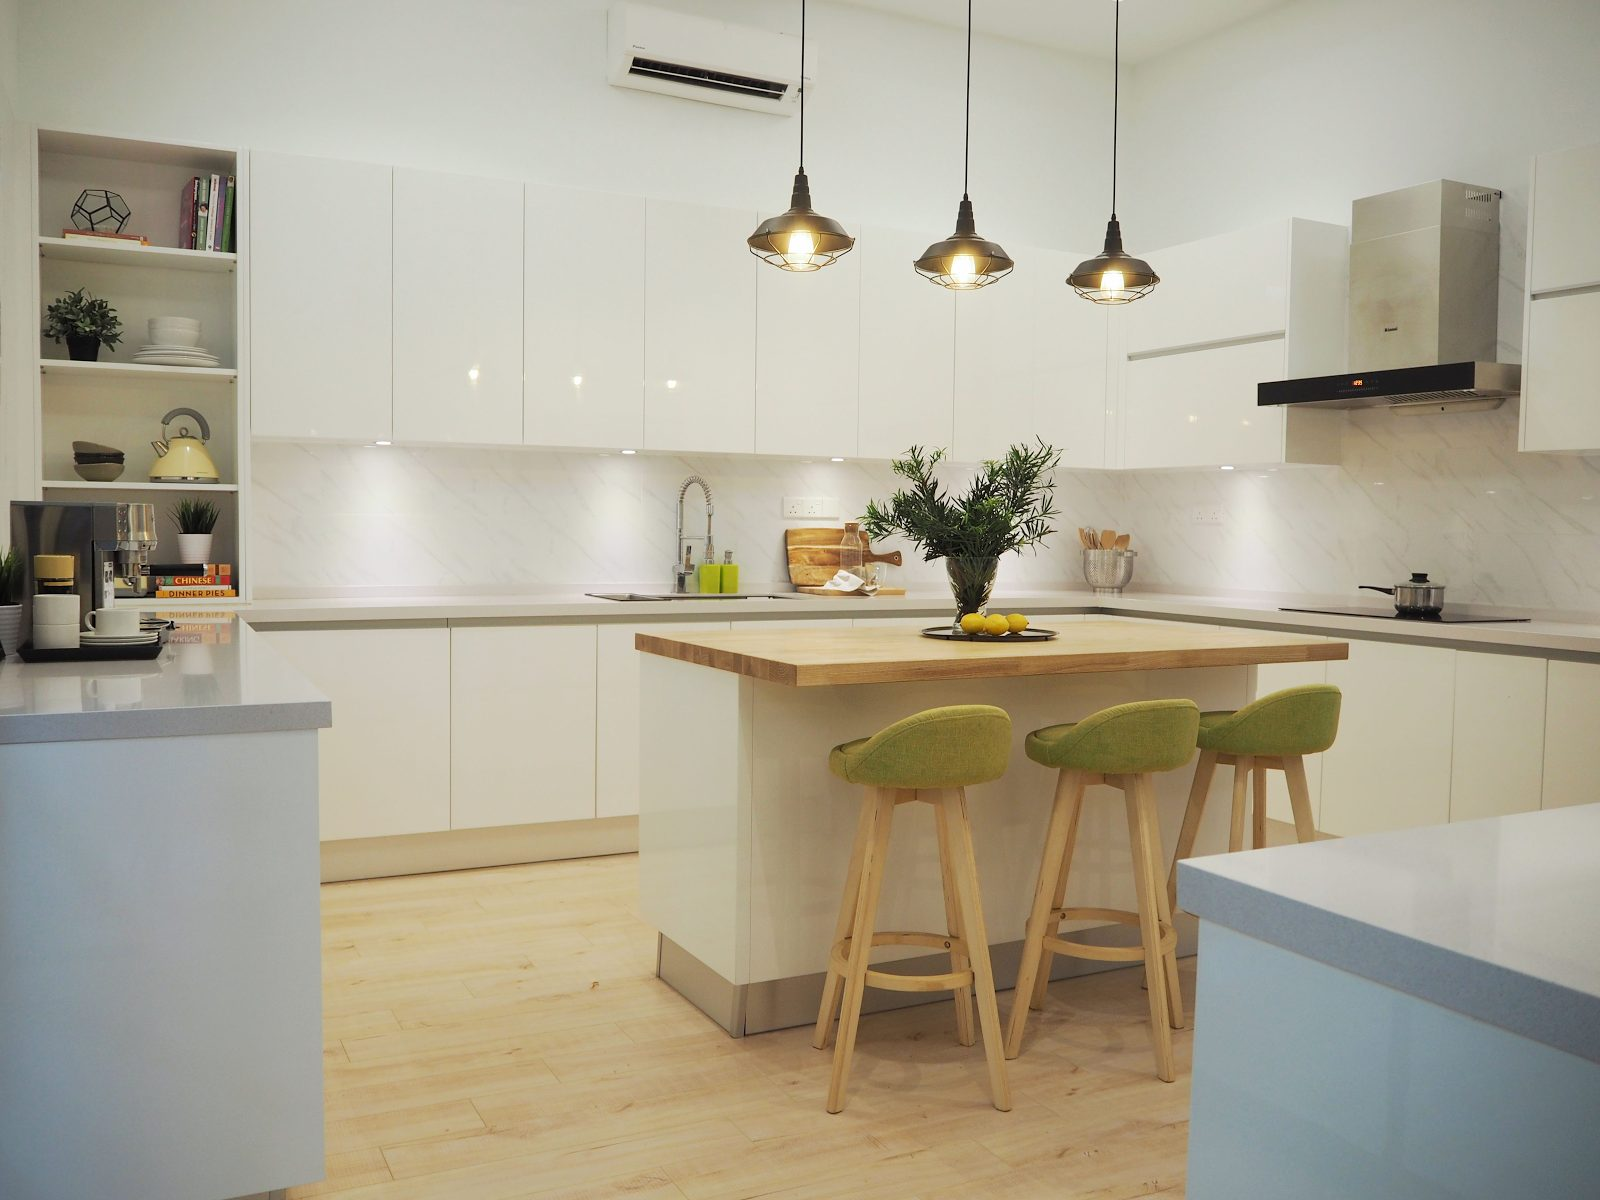 5 Mistakes to Avoid During Kitchen Renovation